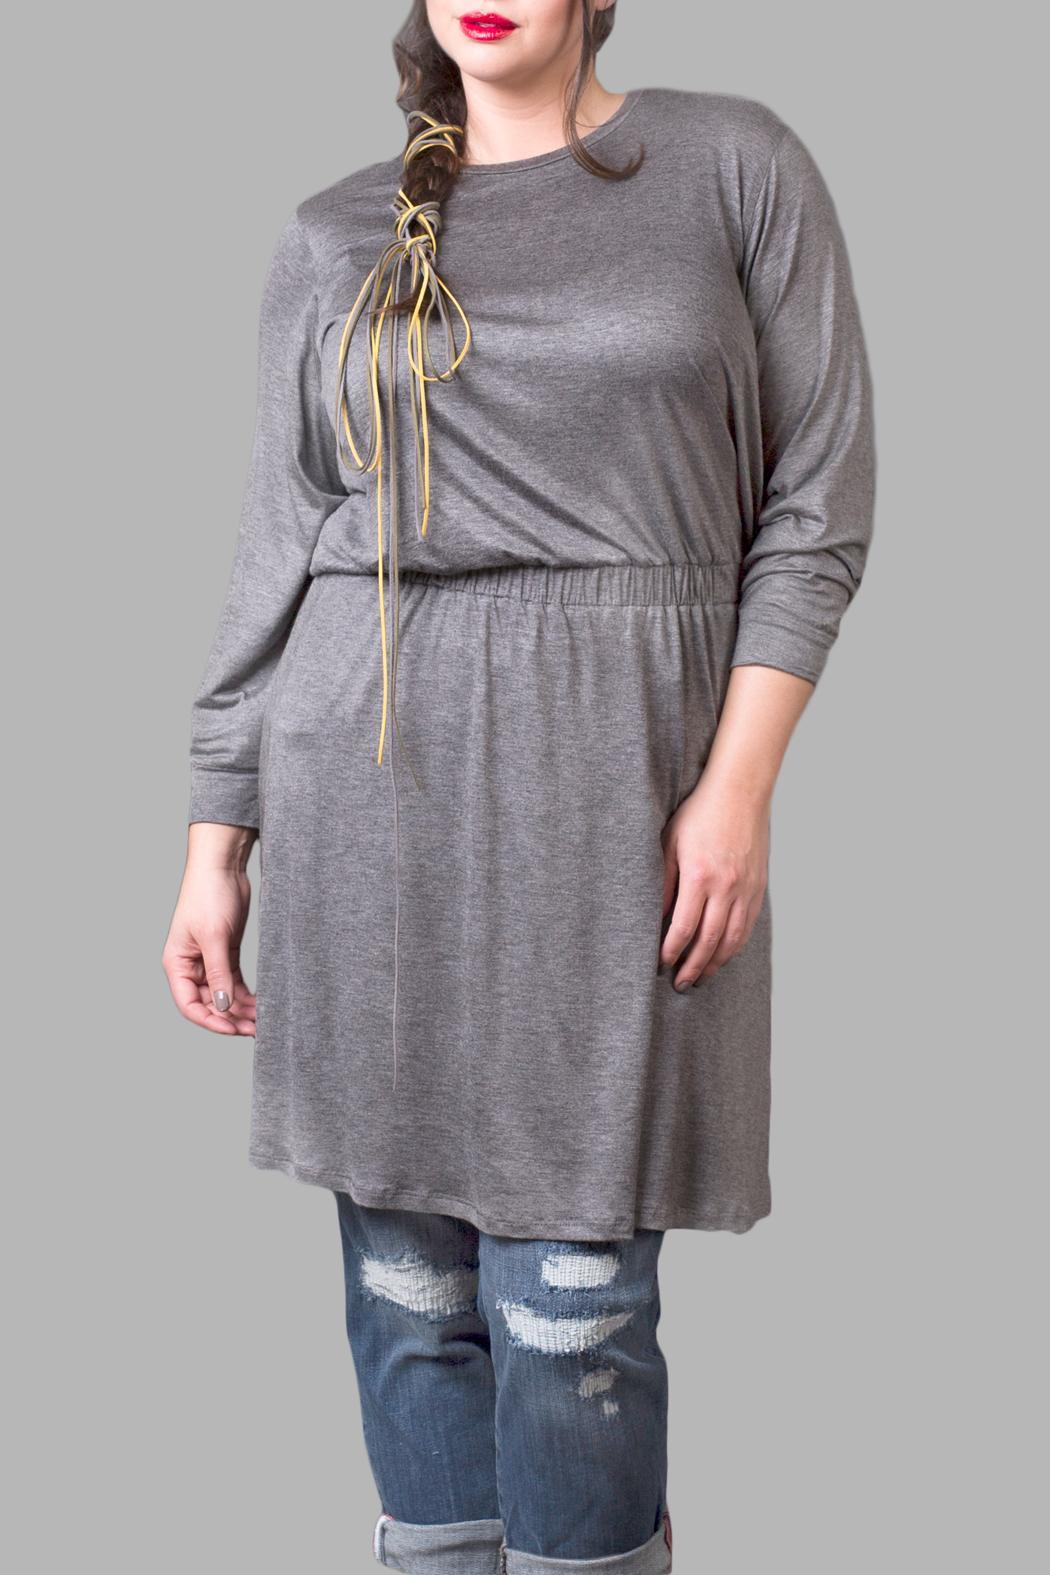 Love By Yona Charcoal Jersey Dress - Main Image